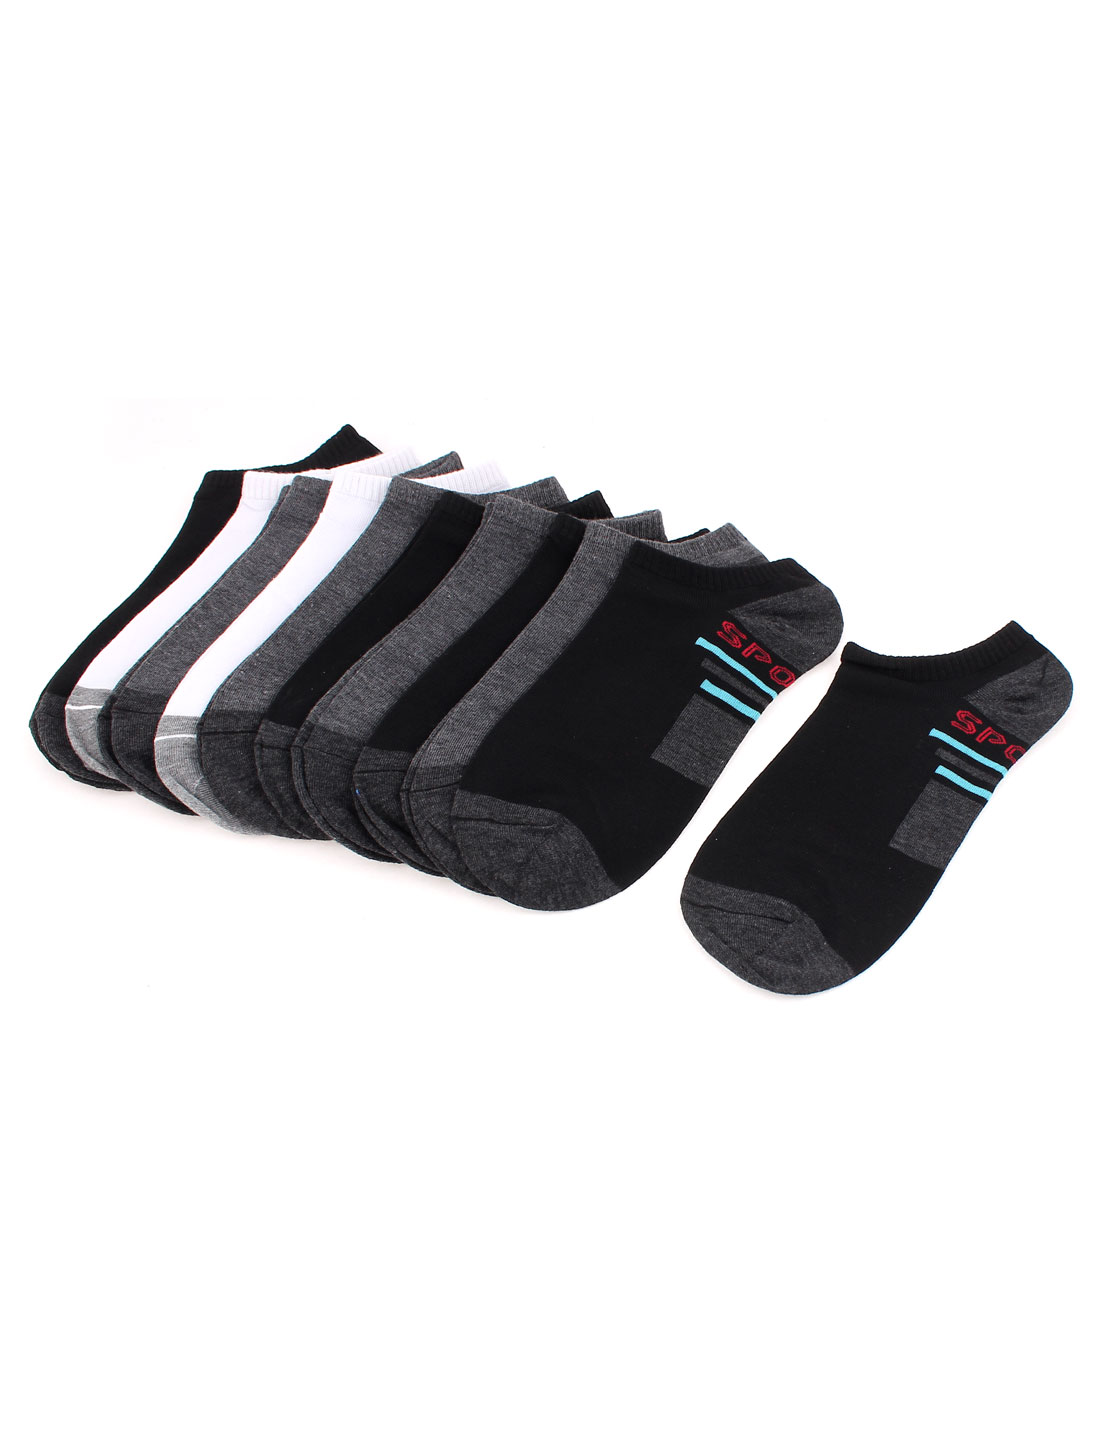 10 Pairs Cotton Blends Stretchy Cuff Letter Pattern Sports Ankle Socks for Men Tri Color